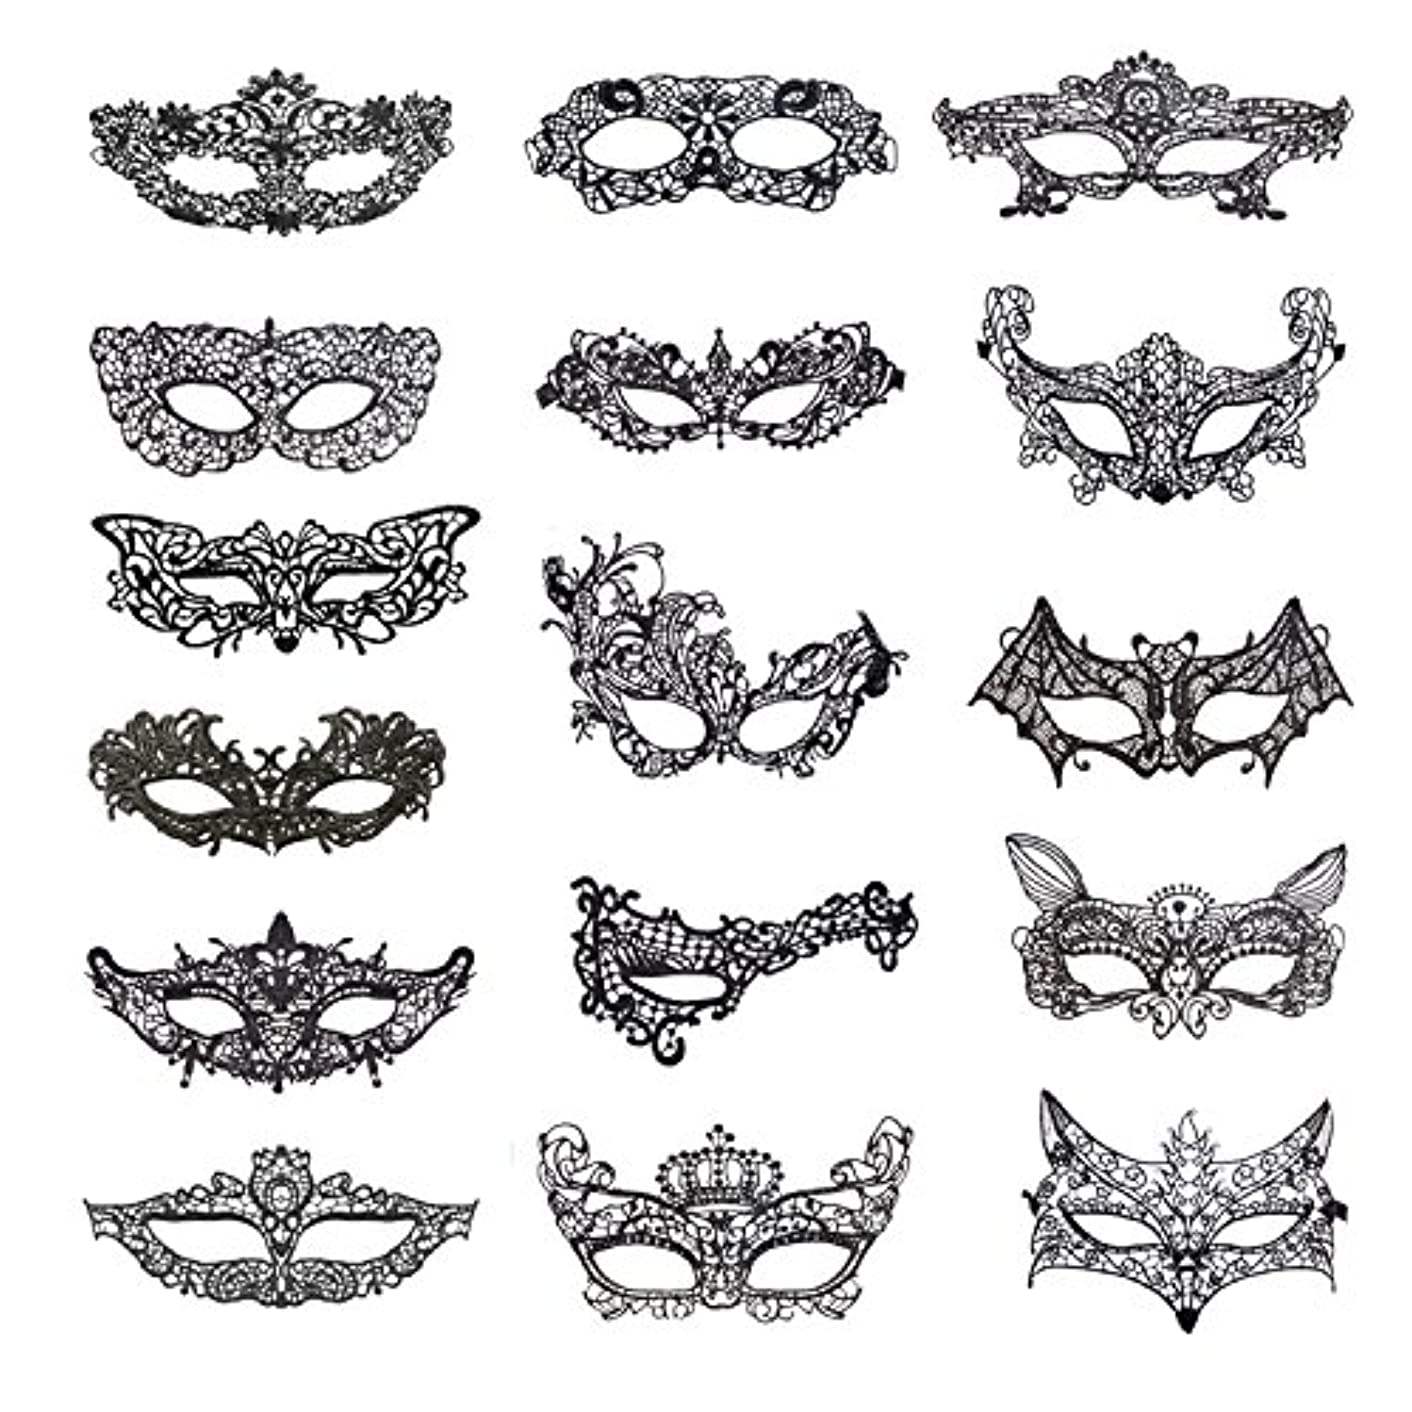 Coobey 16 Pieces Lace Masquerade Mask Venetian Halloween Costume Sexy Woman Mask for Halloween Masquerade Party, Black